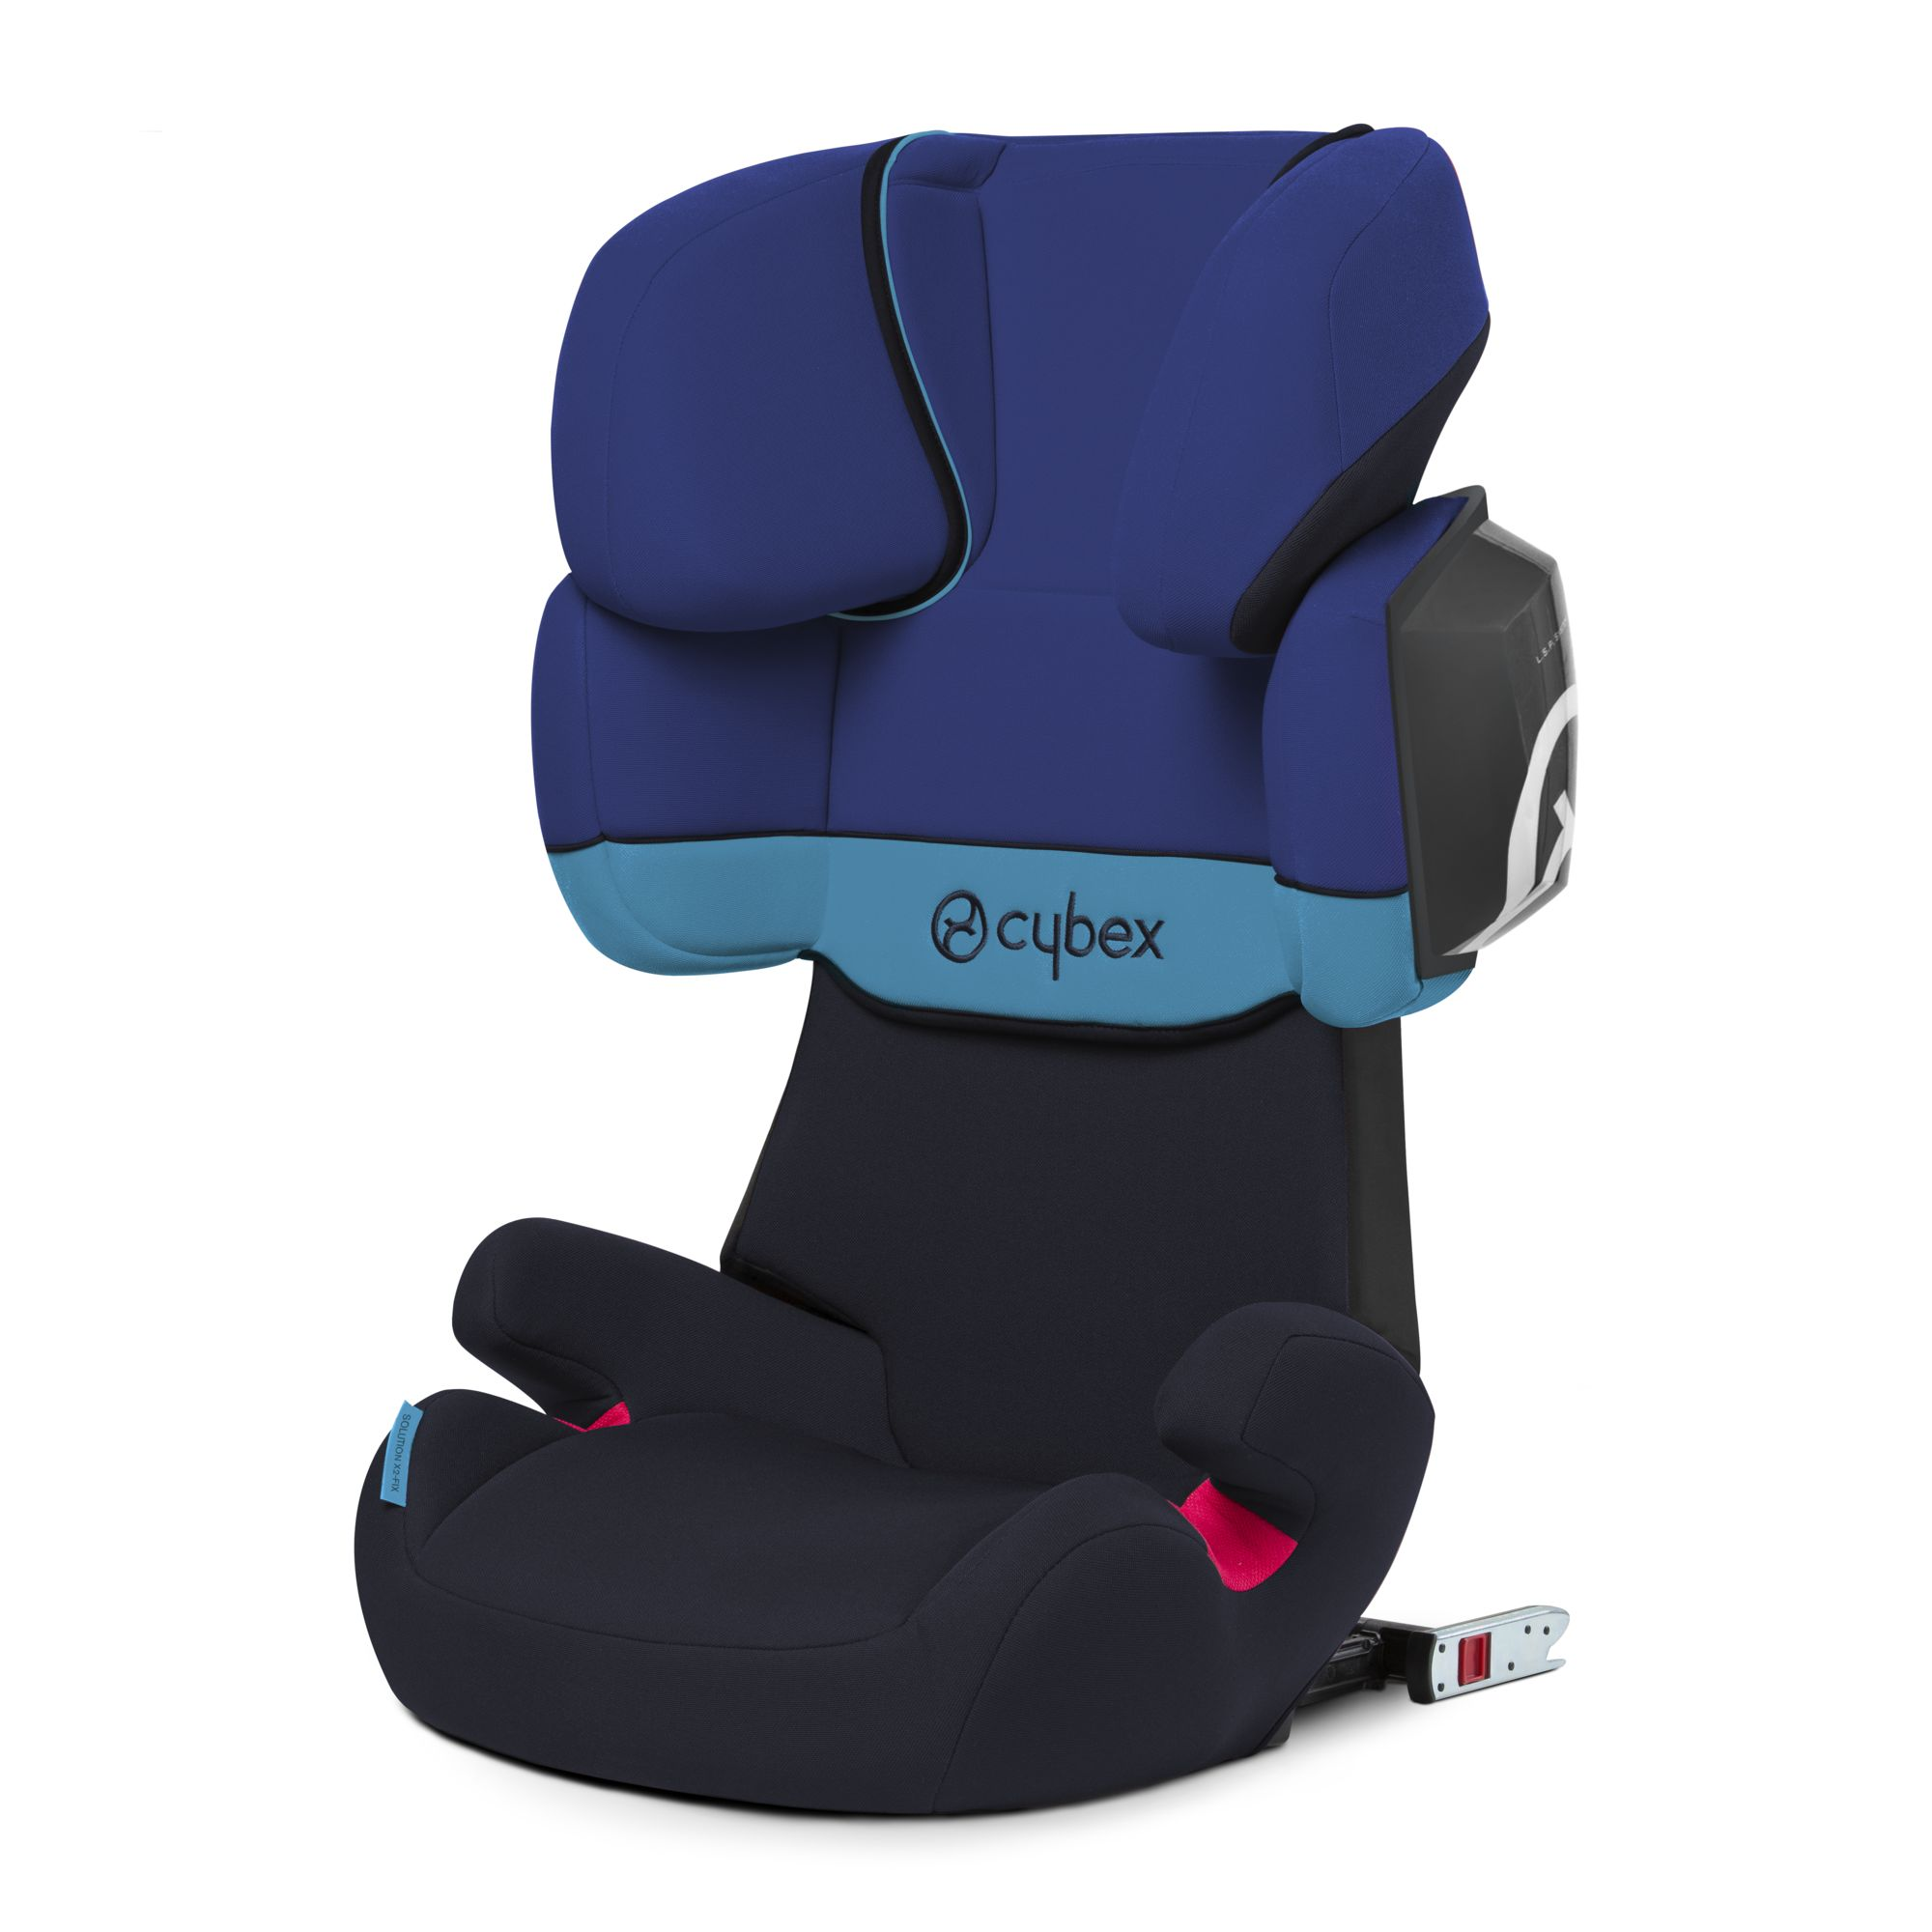 Child Car Safety Seats Cybex 515117003 for girls and boys Baby seat Kids Children chair autocradle booster